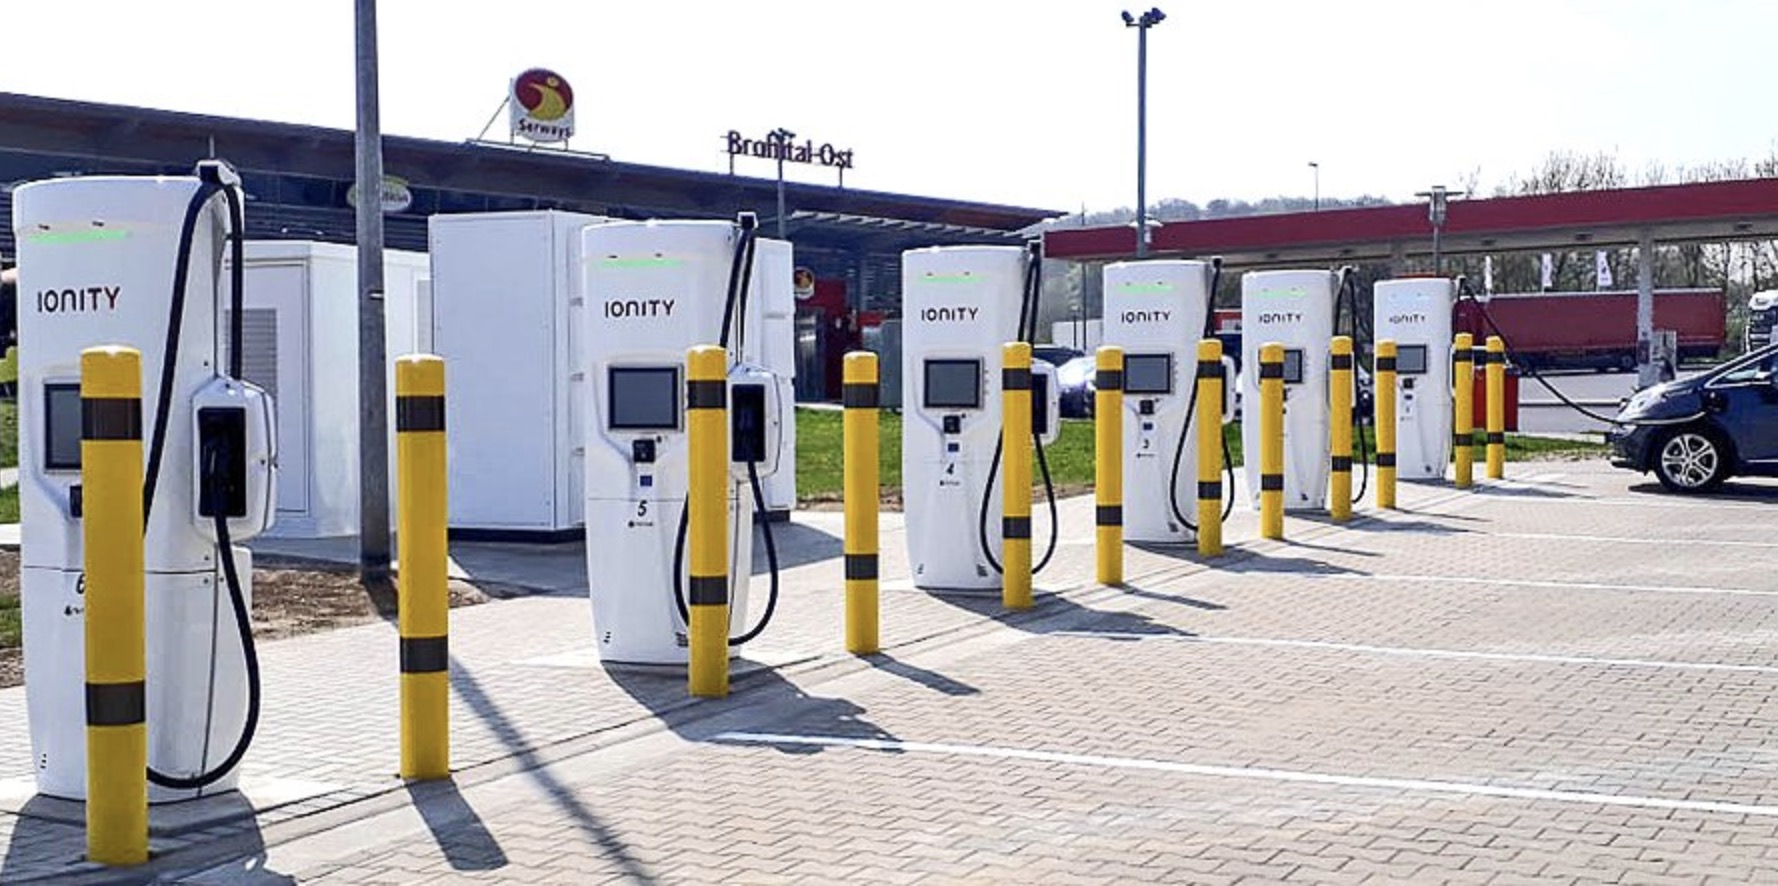 IONITY to increase electric vehicle charging prices 500% - Electrek